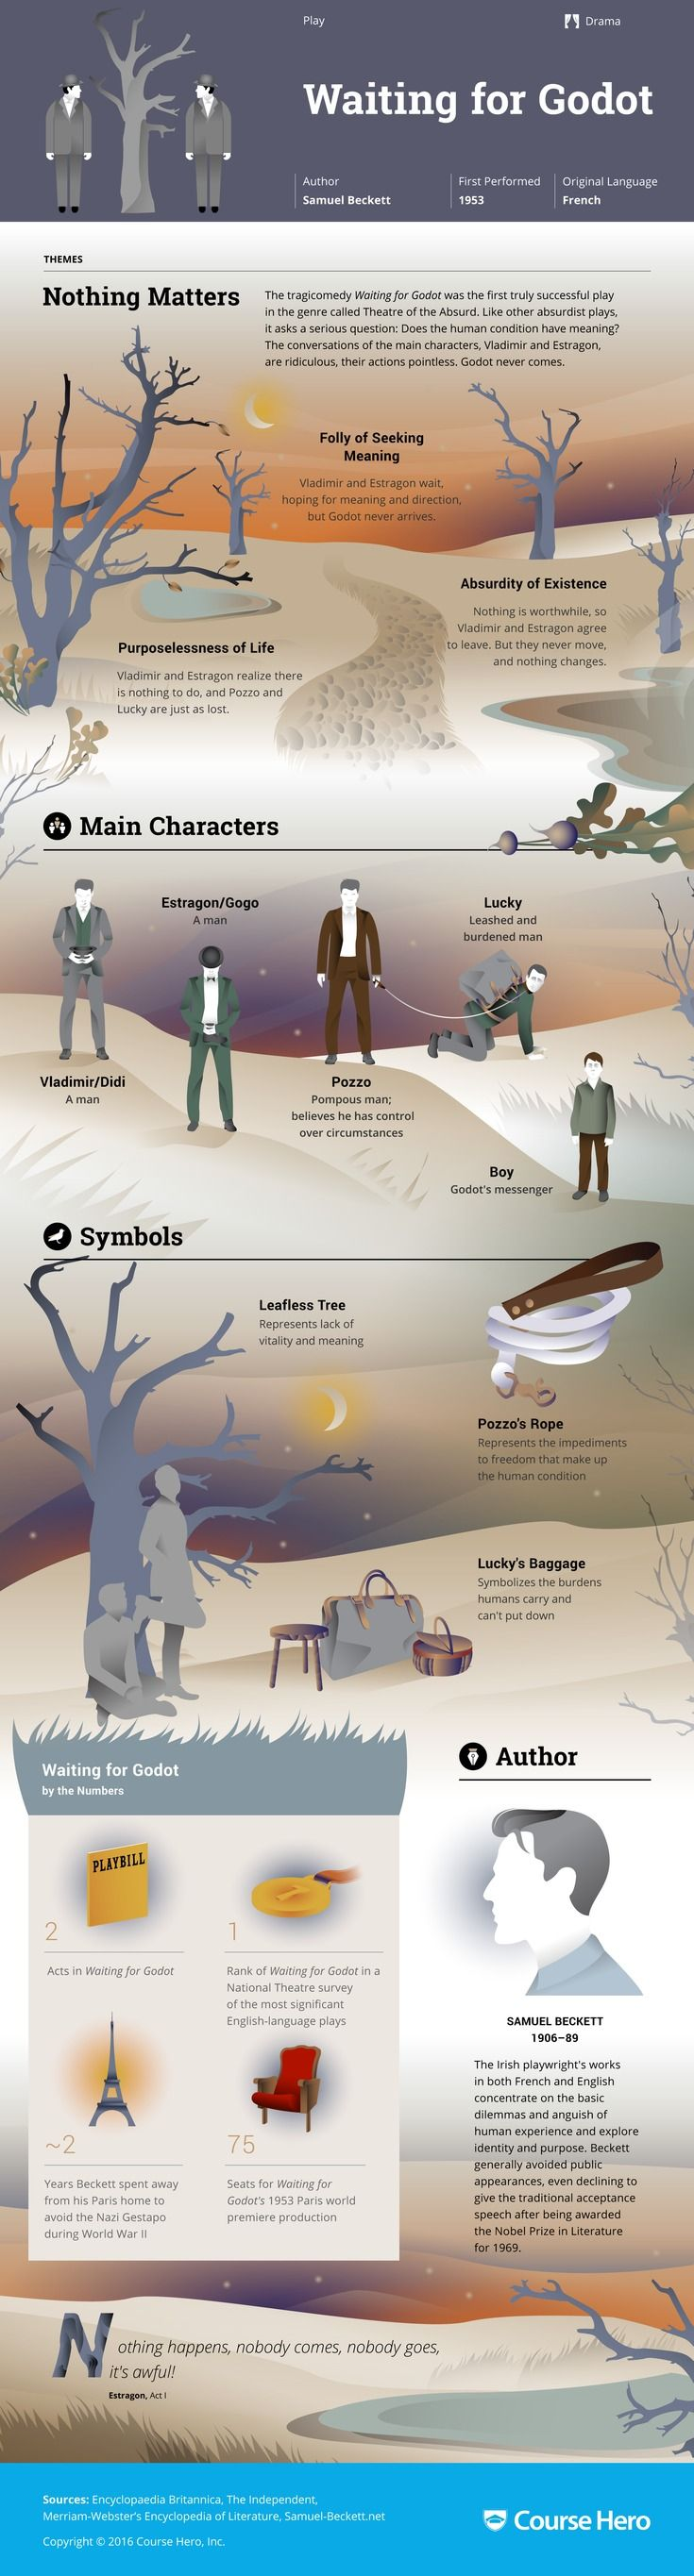 @CourseHero infographic on Waiting for Godot